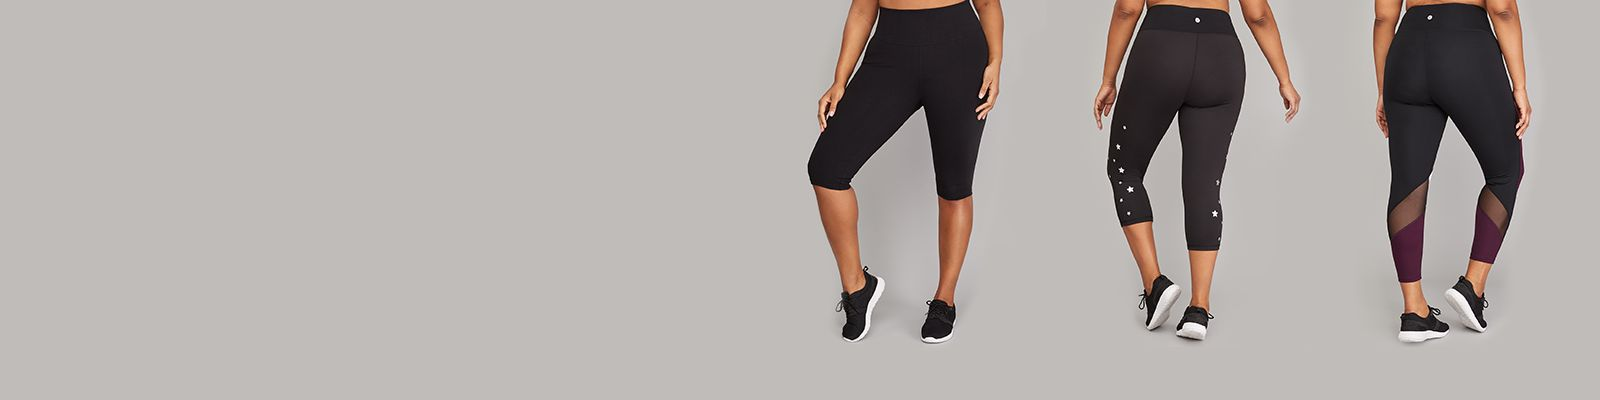 Plus size active leggings and bottoms with laser cut and zipper details